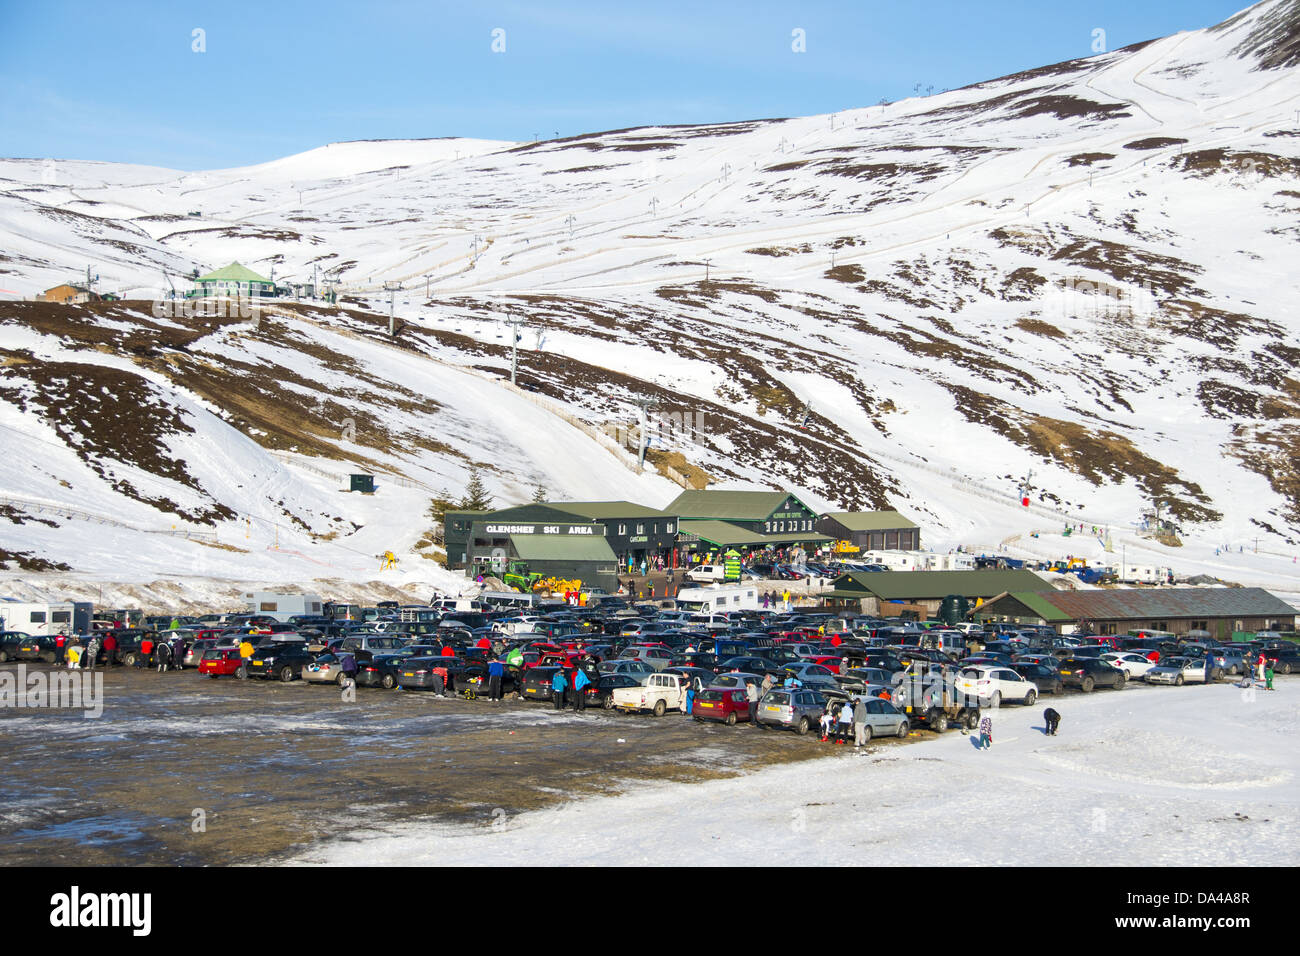 ski resort carpark buildings and chairlift in snow glenshee ski